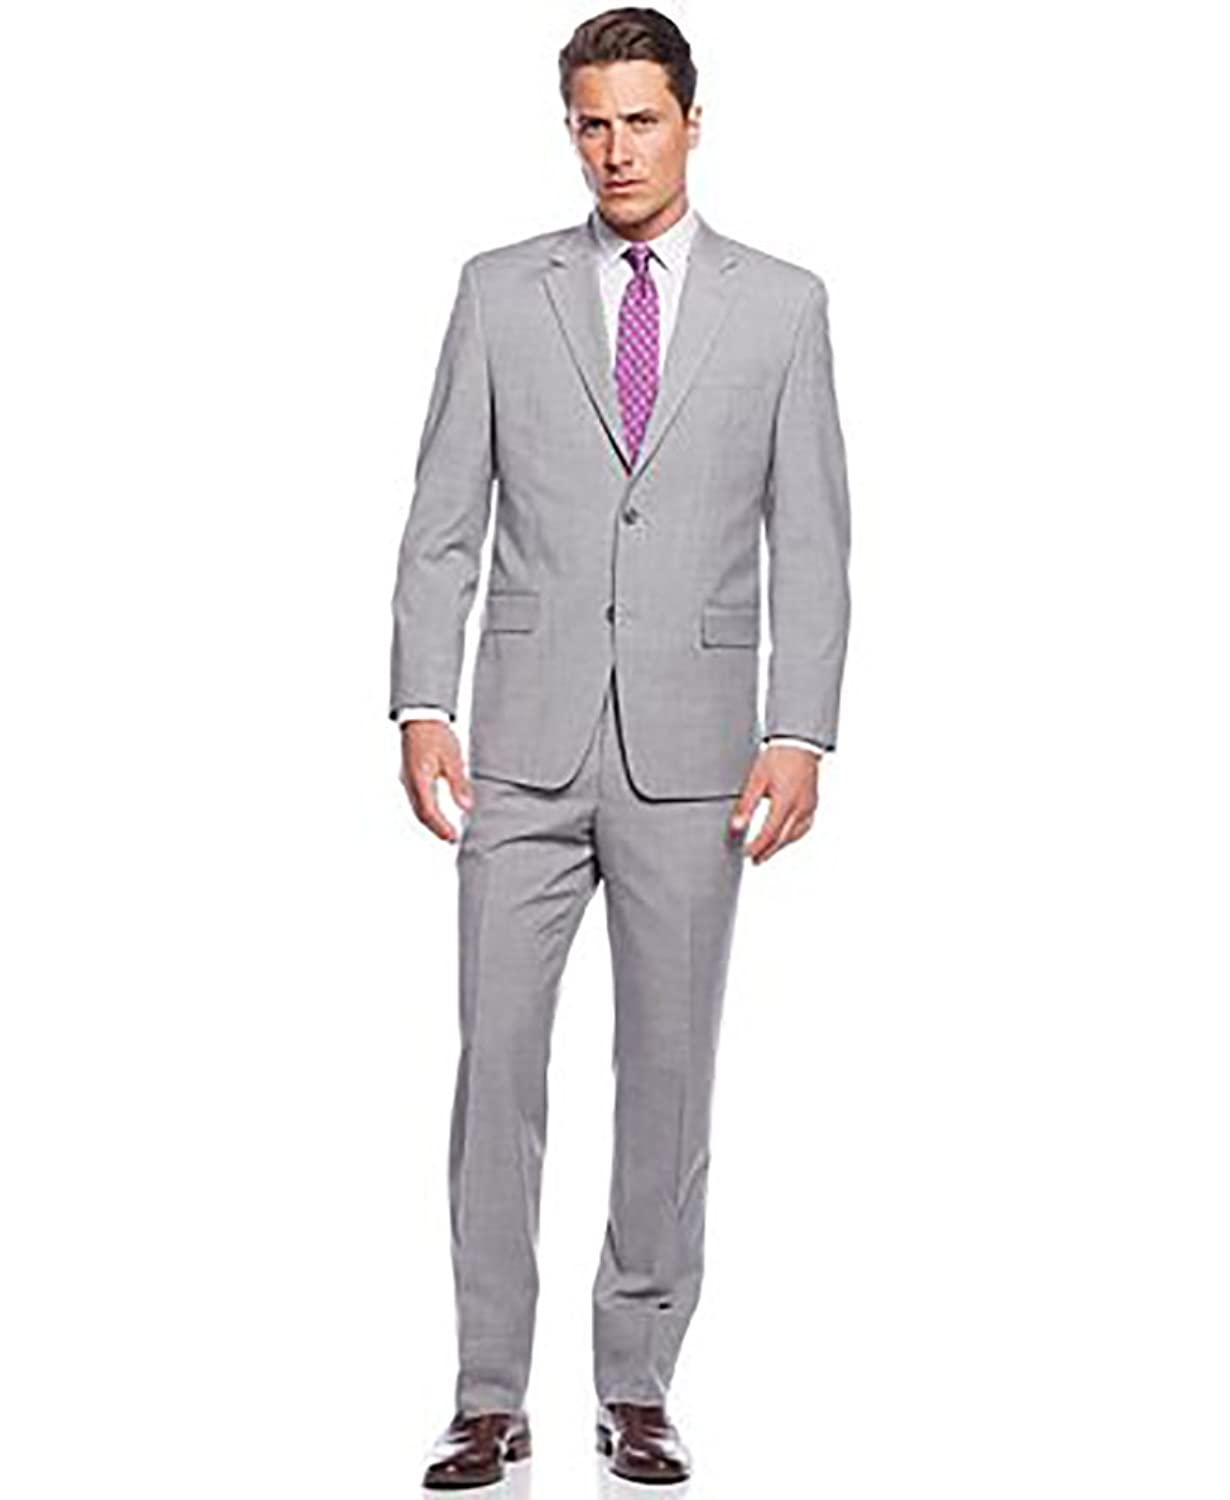 on sale Michael Michael Kors Light Grey Suit 44R / 37 Waist